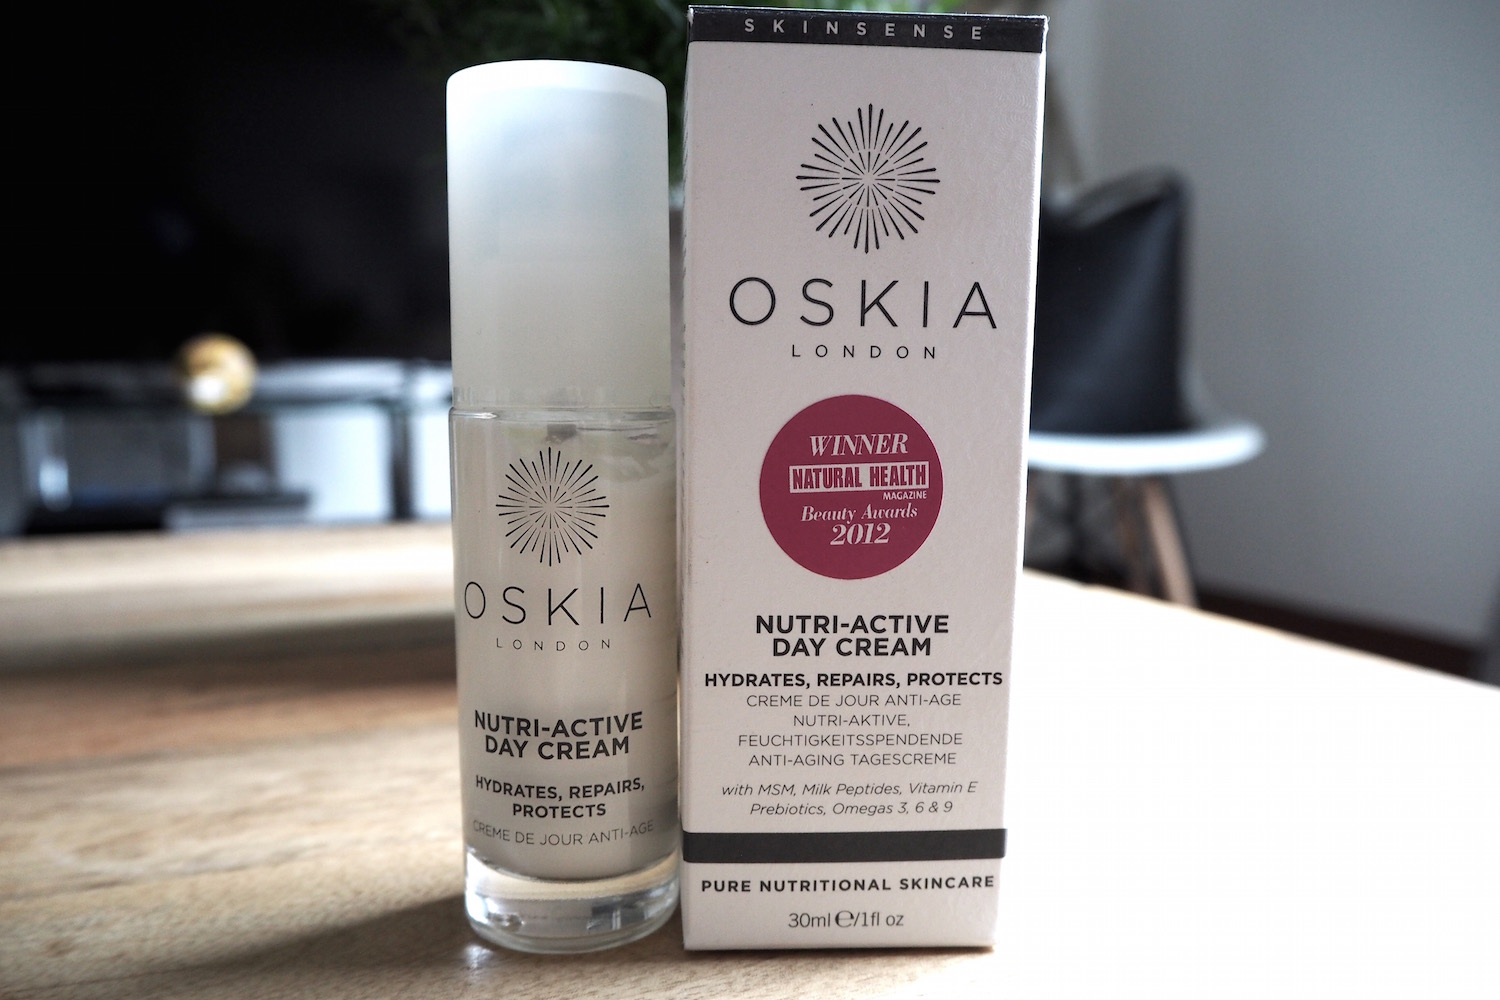 Oskia Nutri-Active Day Cream